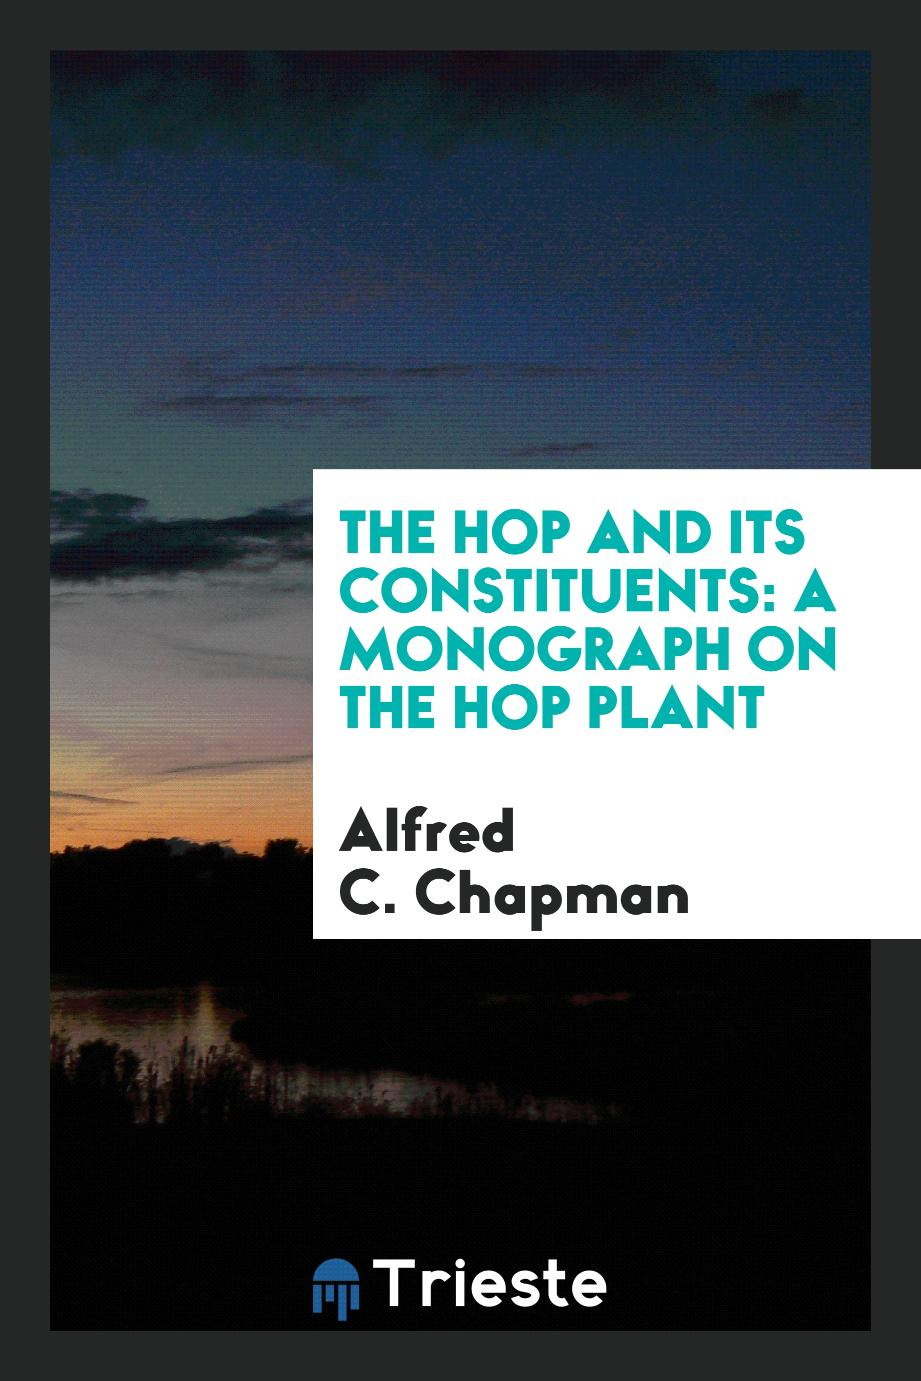 The Hop and Its Constituents: A Monograph on the Hop Plant